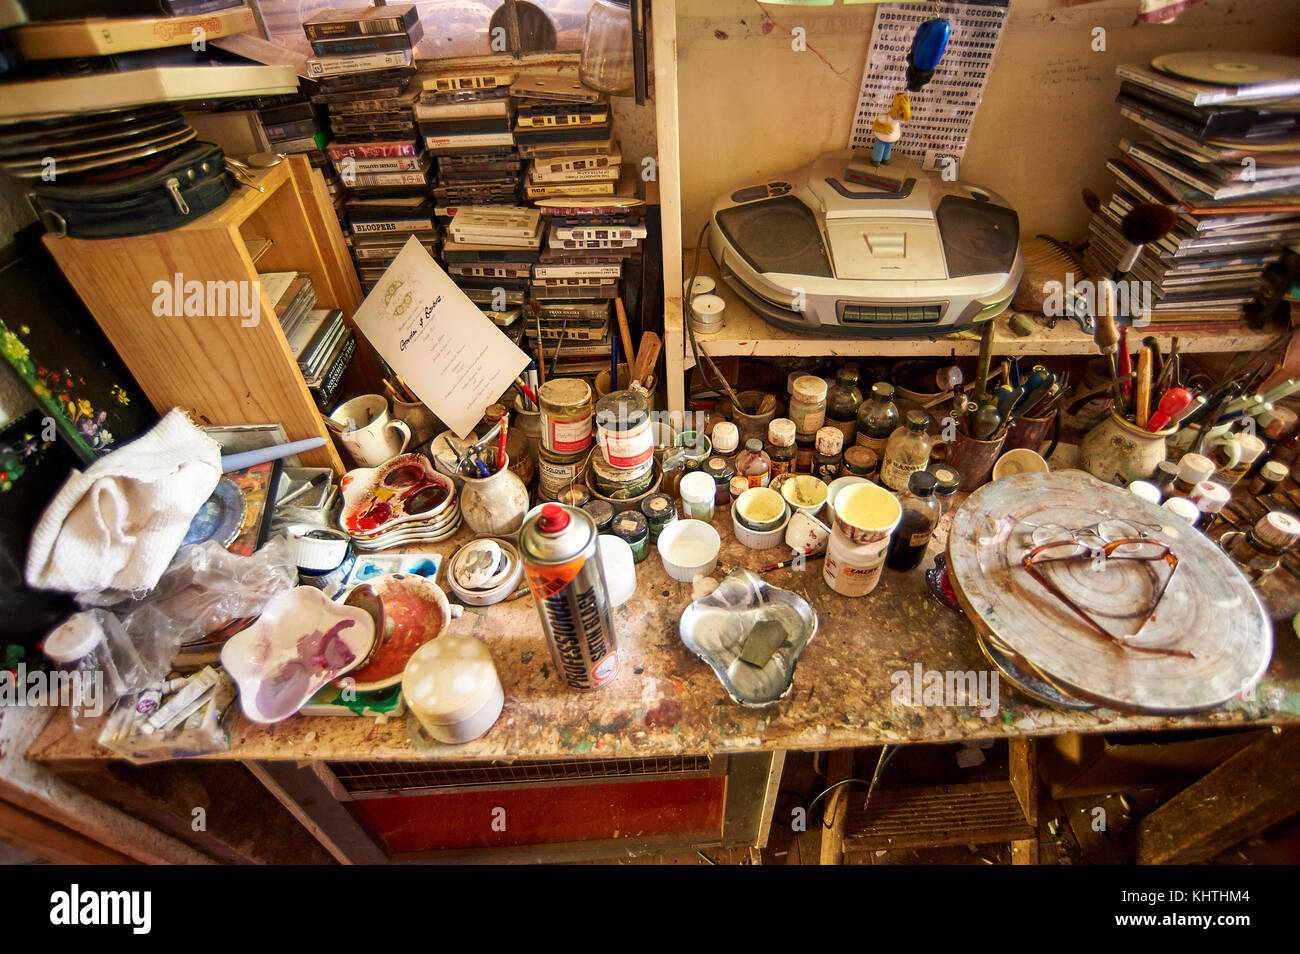 Work bench cluttered with paints and potters wheel in pottery studio, Longsleddale, Kentmere, Lake District - Stock Image